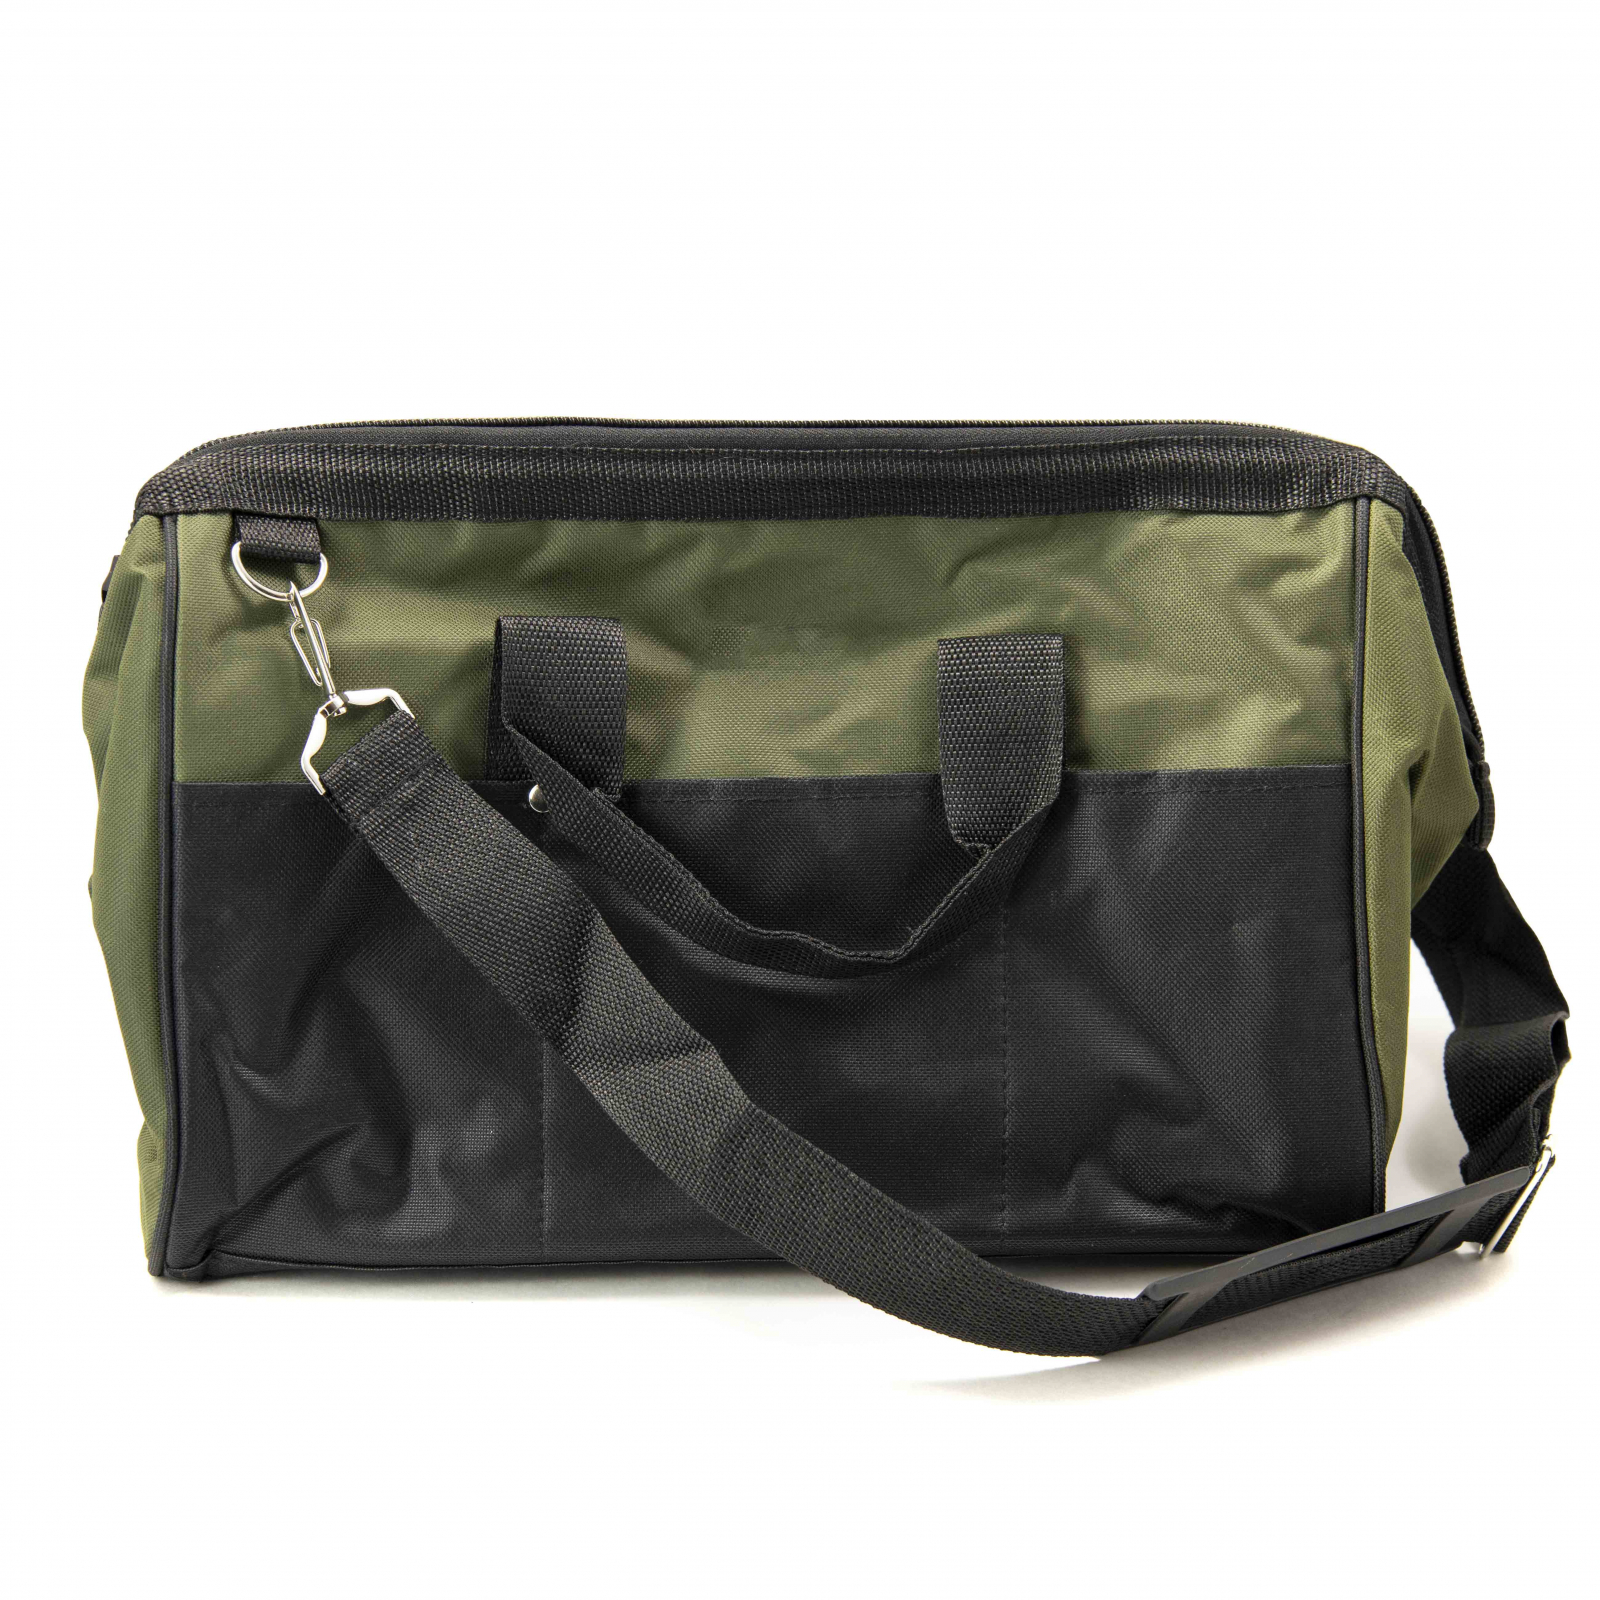 ToolTreaux Nylon Storage Tool Bag with Side Pockets - Black